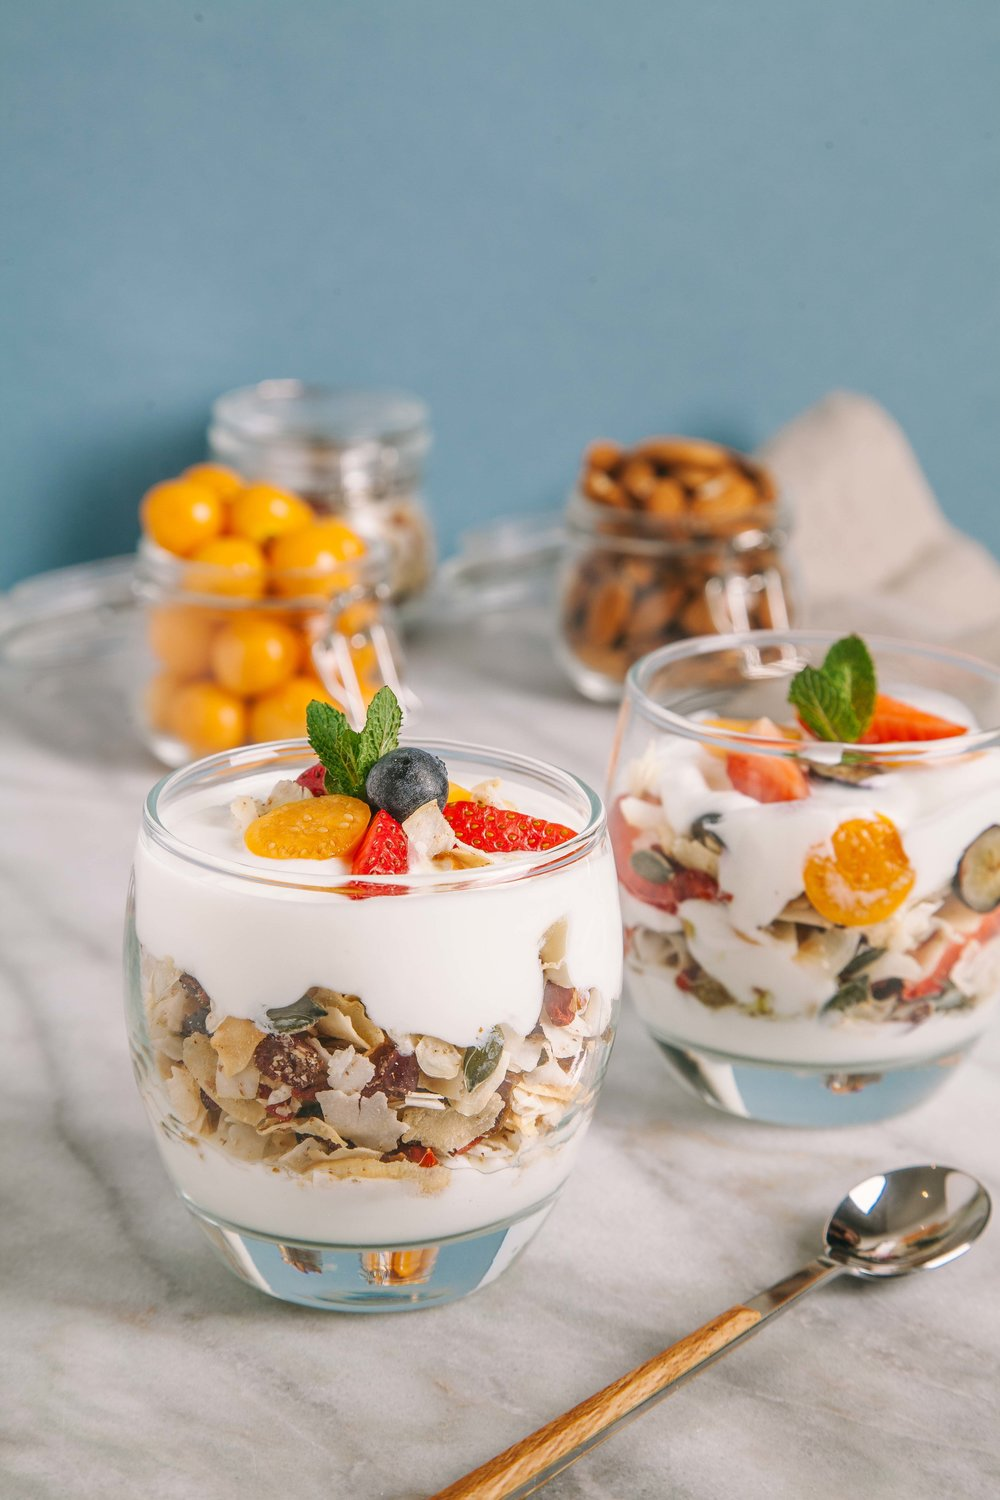 - We treat ourselves with this homemade granola for breakfast, after our workouts, or just anytime we need a pick-me-up…